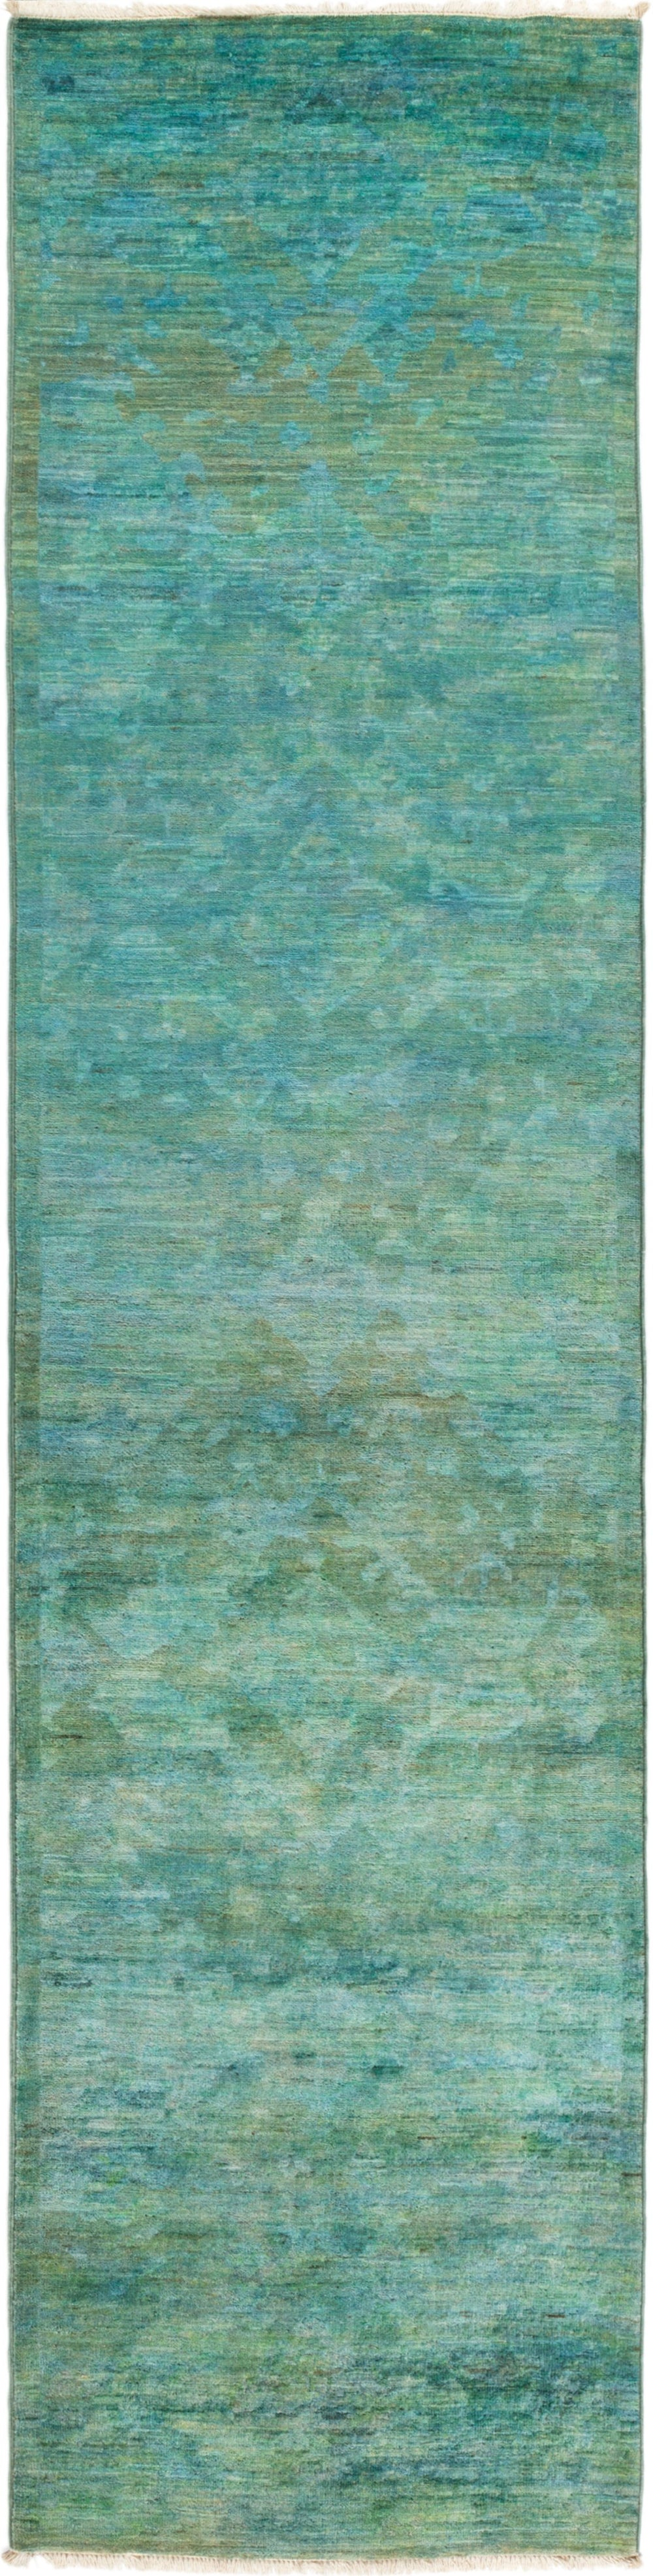 "Vibrance, Green Wool Runner Rug - 2' 7"" x 10' 4"""